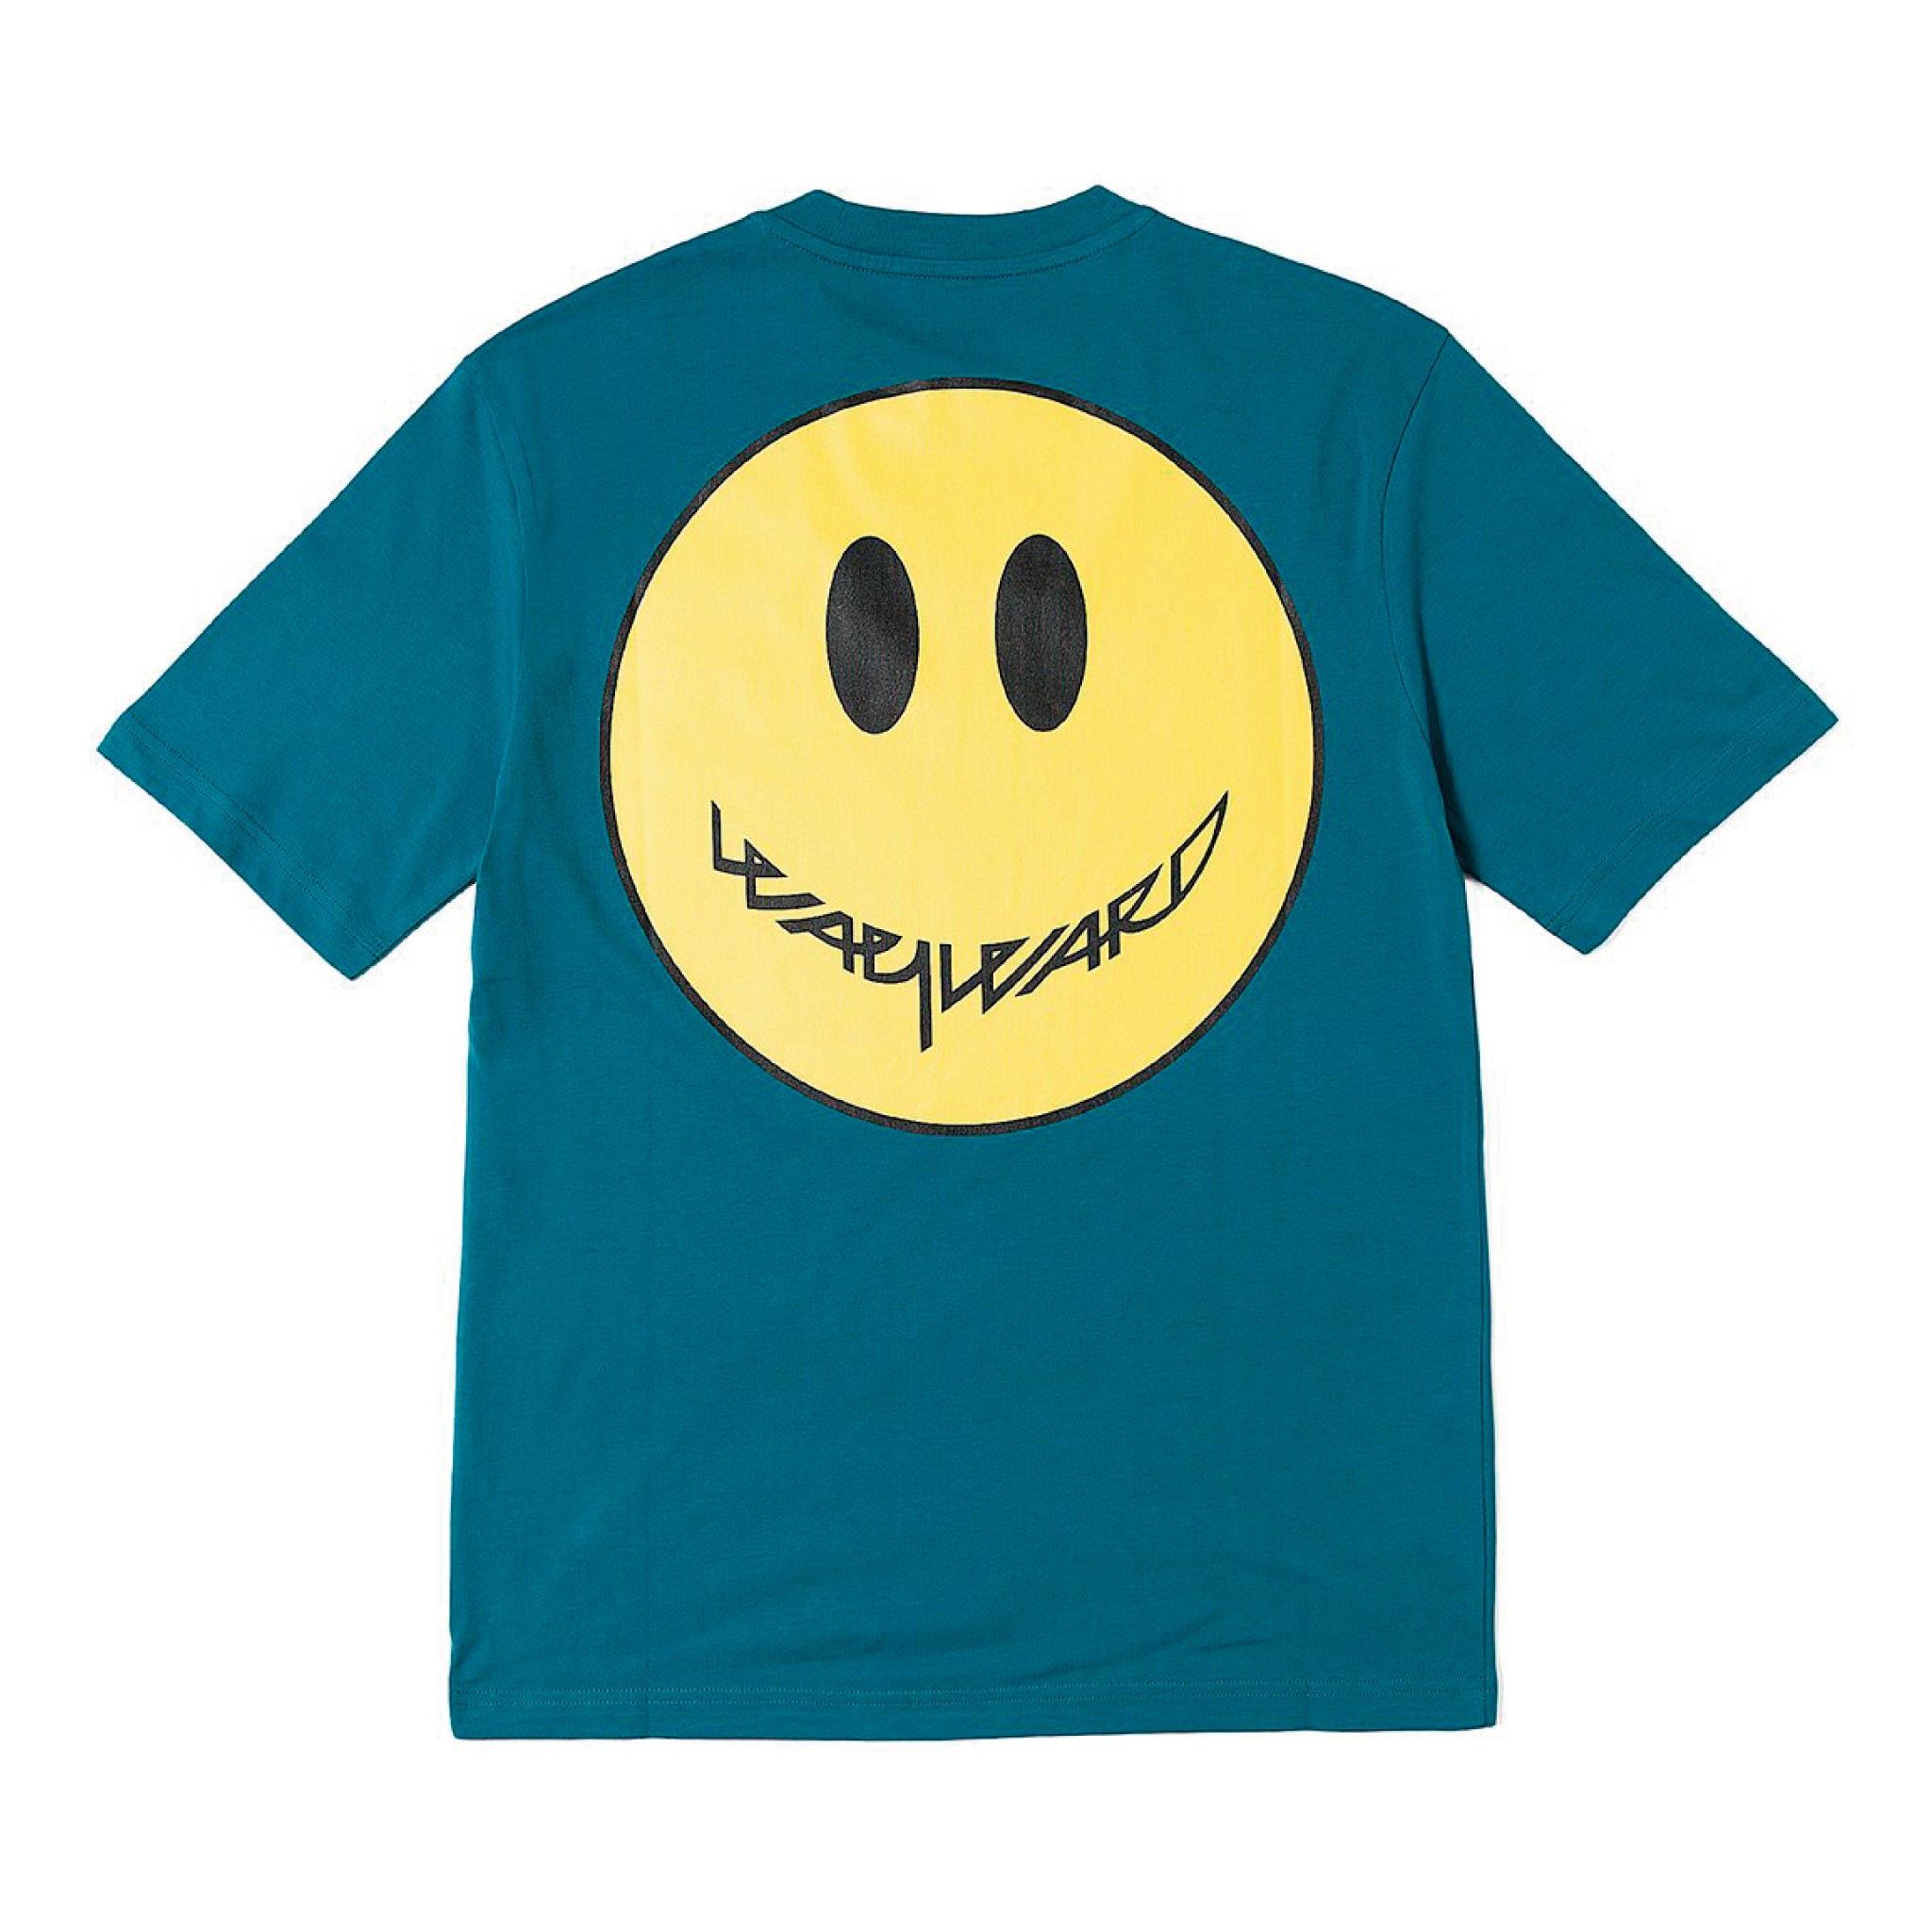 SMILEE T-SHIRT TEAL